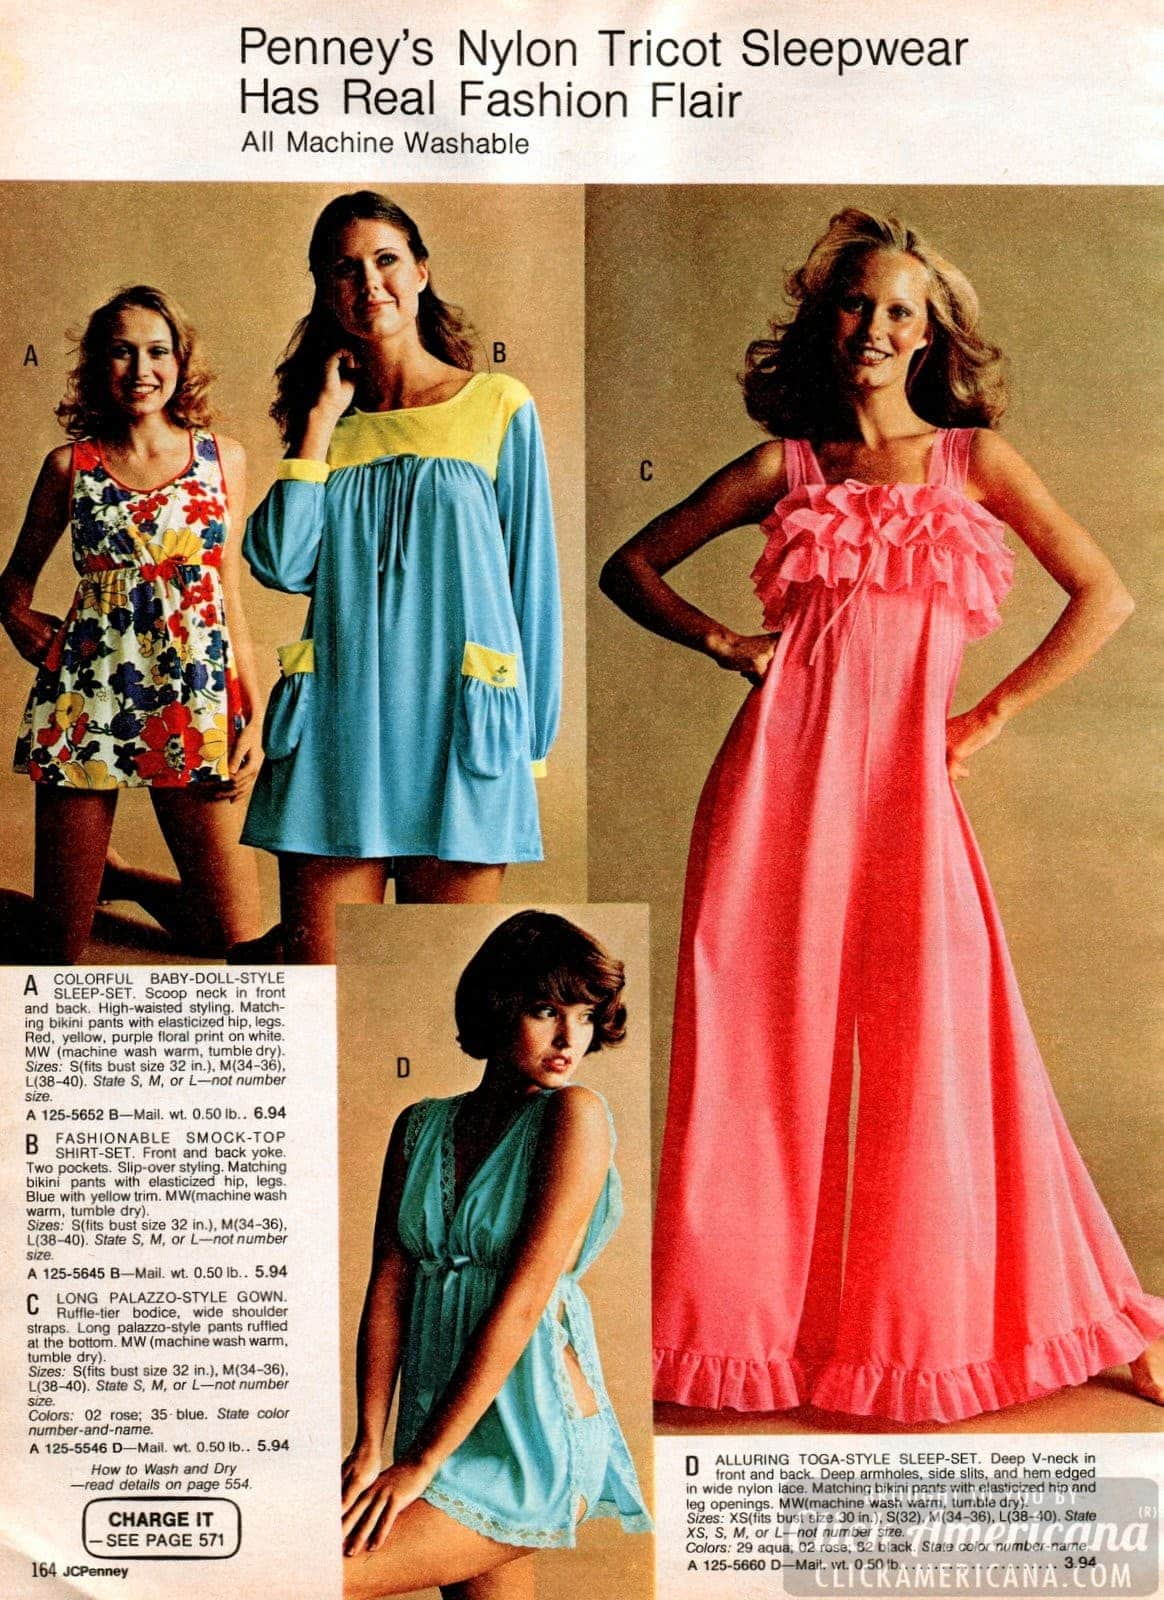 Retro 70s sleepwear for women (4)